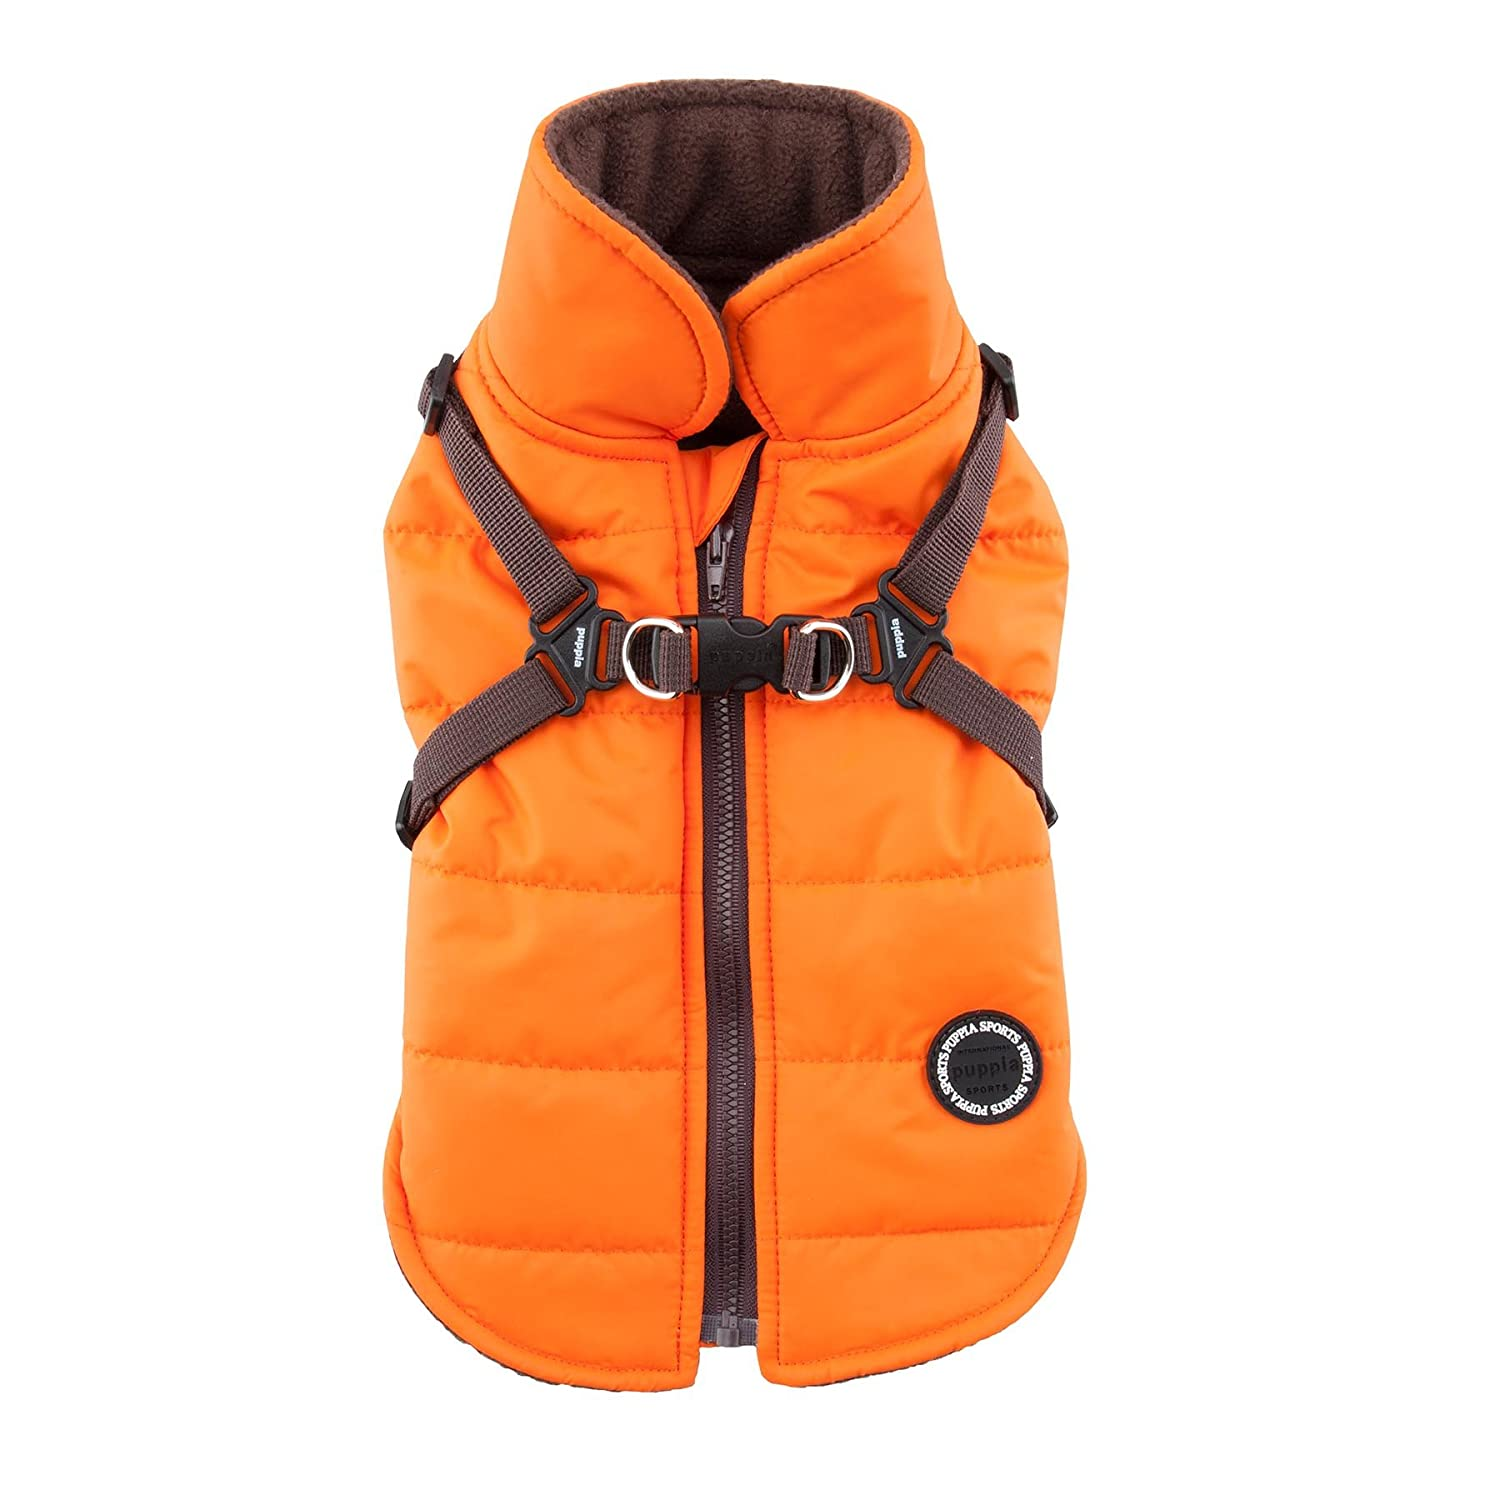 orange Medium orange Medium Puppia PAPD-VT1366-OR-M Authentic Mountaineer II Winter Vest, Medium, orange